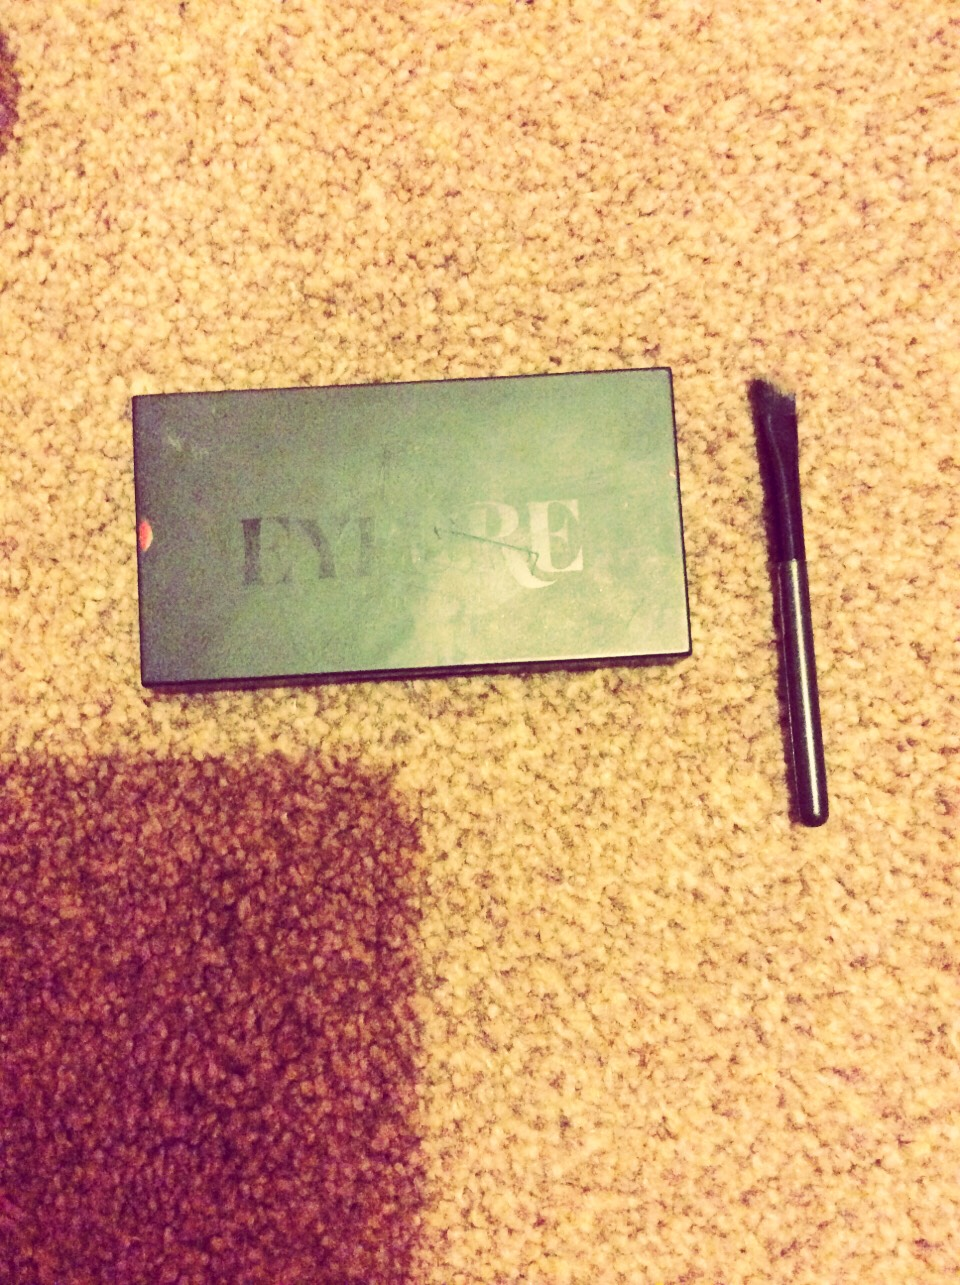 Next I use my eylure eyebrow set to fill in my eyebrows